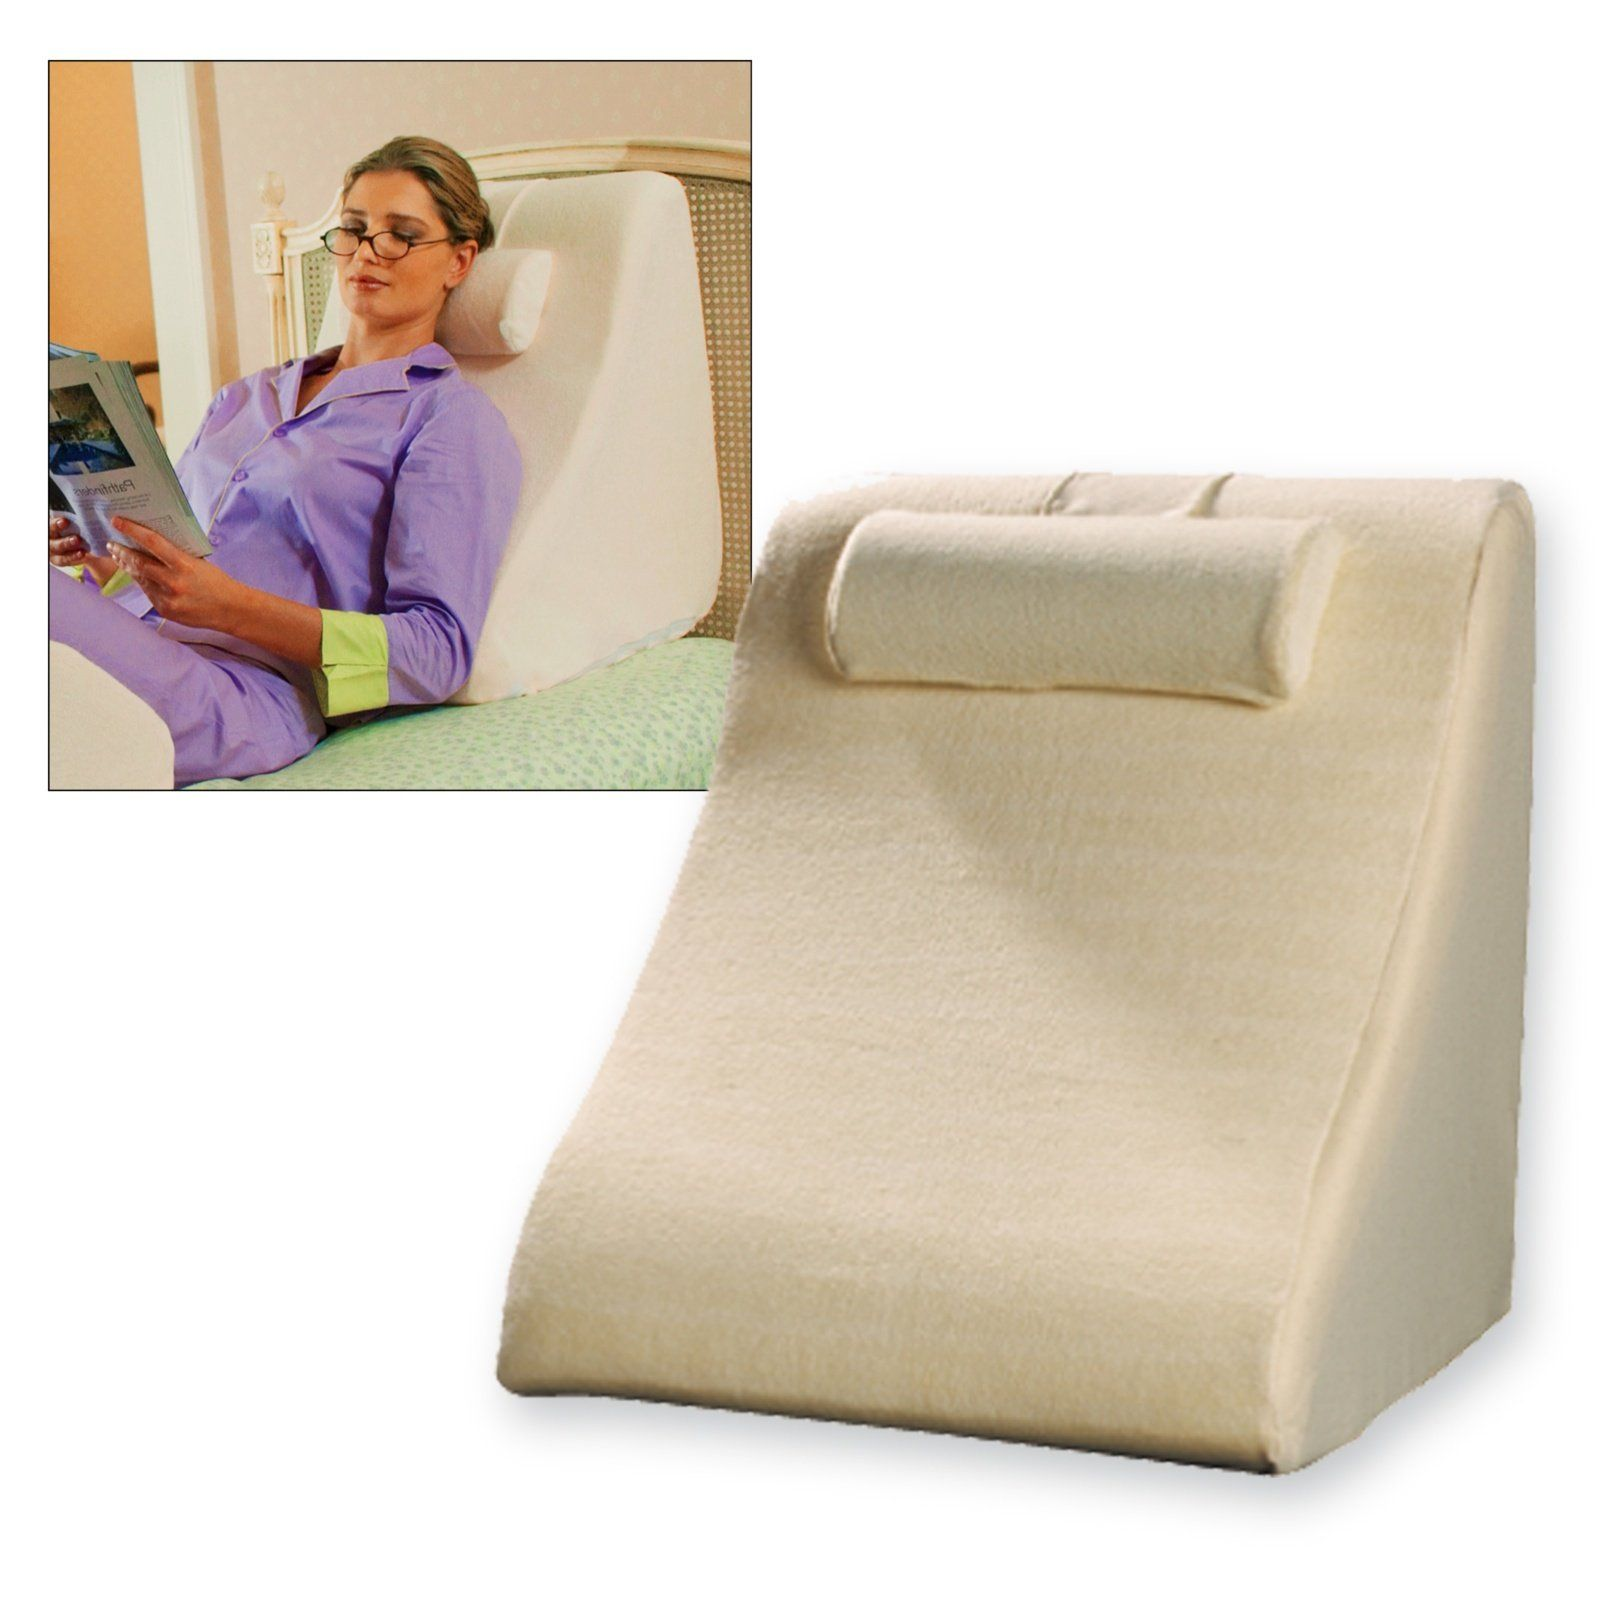 Reading Pillow Bed Jobri Spine Reliever Bed Wedge Sleepy Time Wedge Pillow